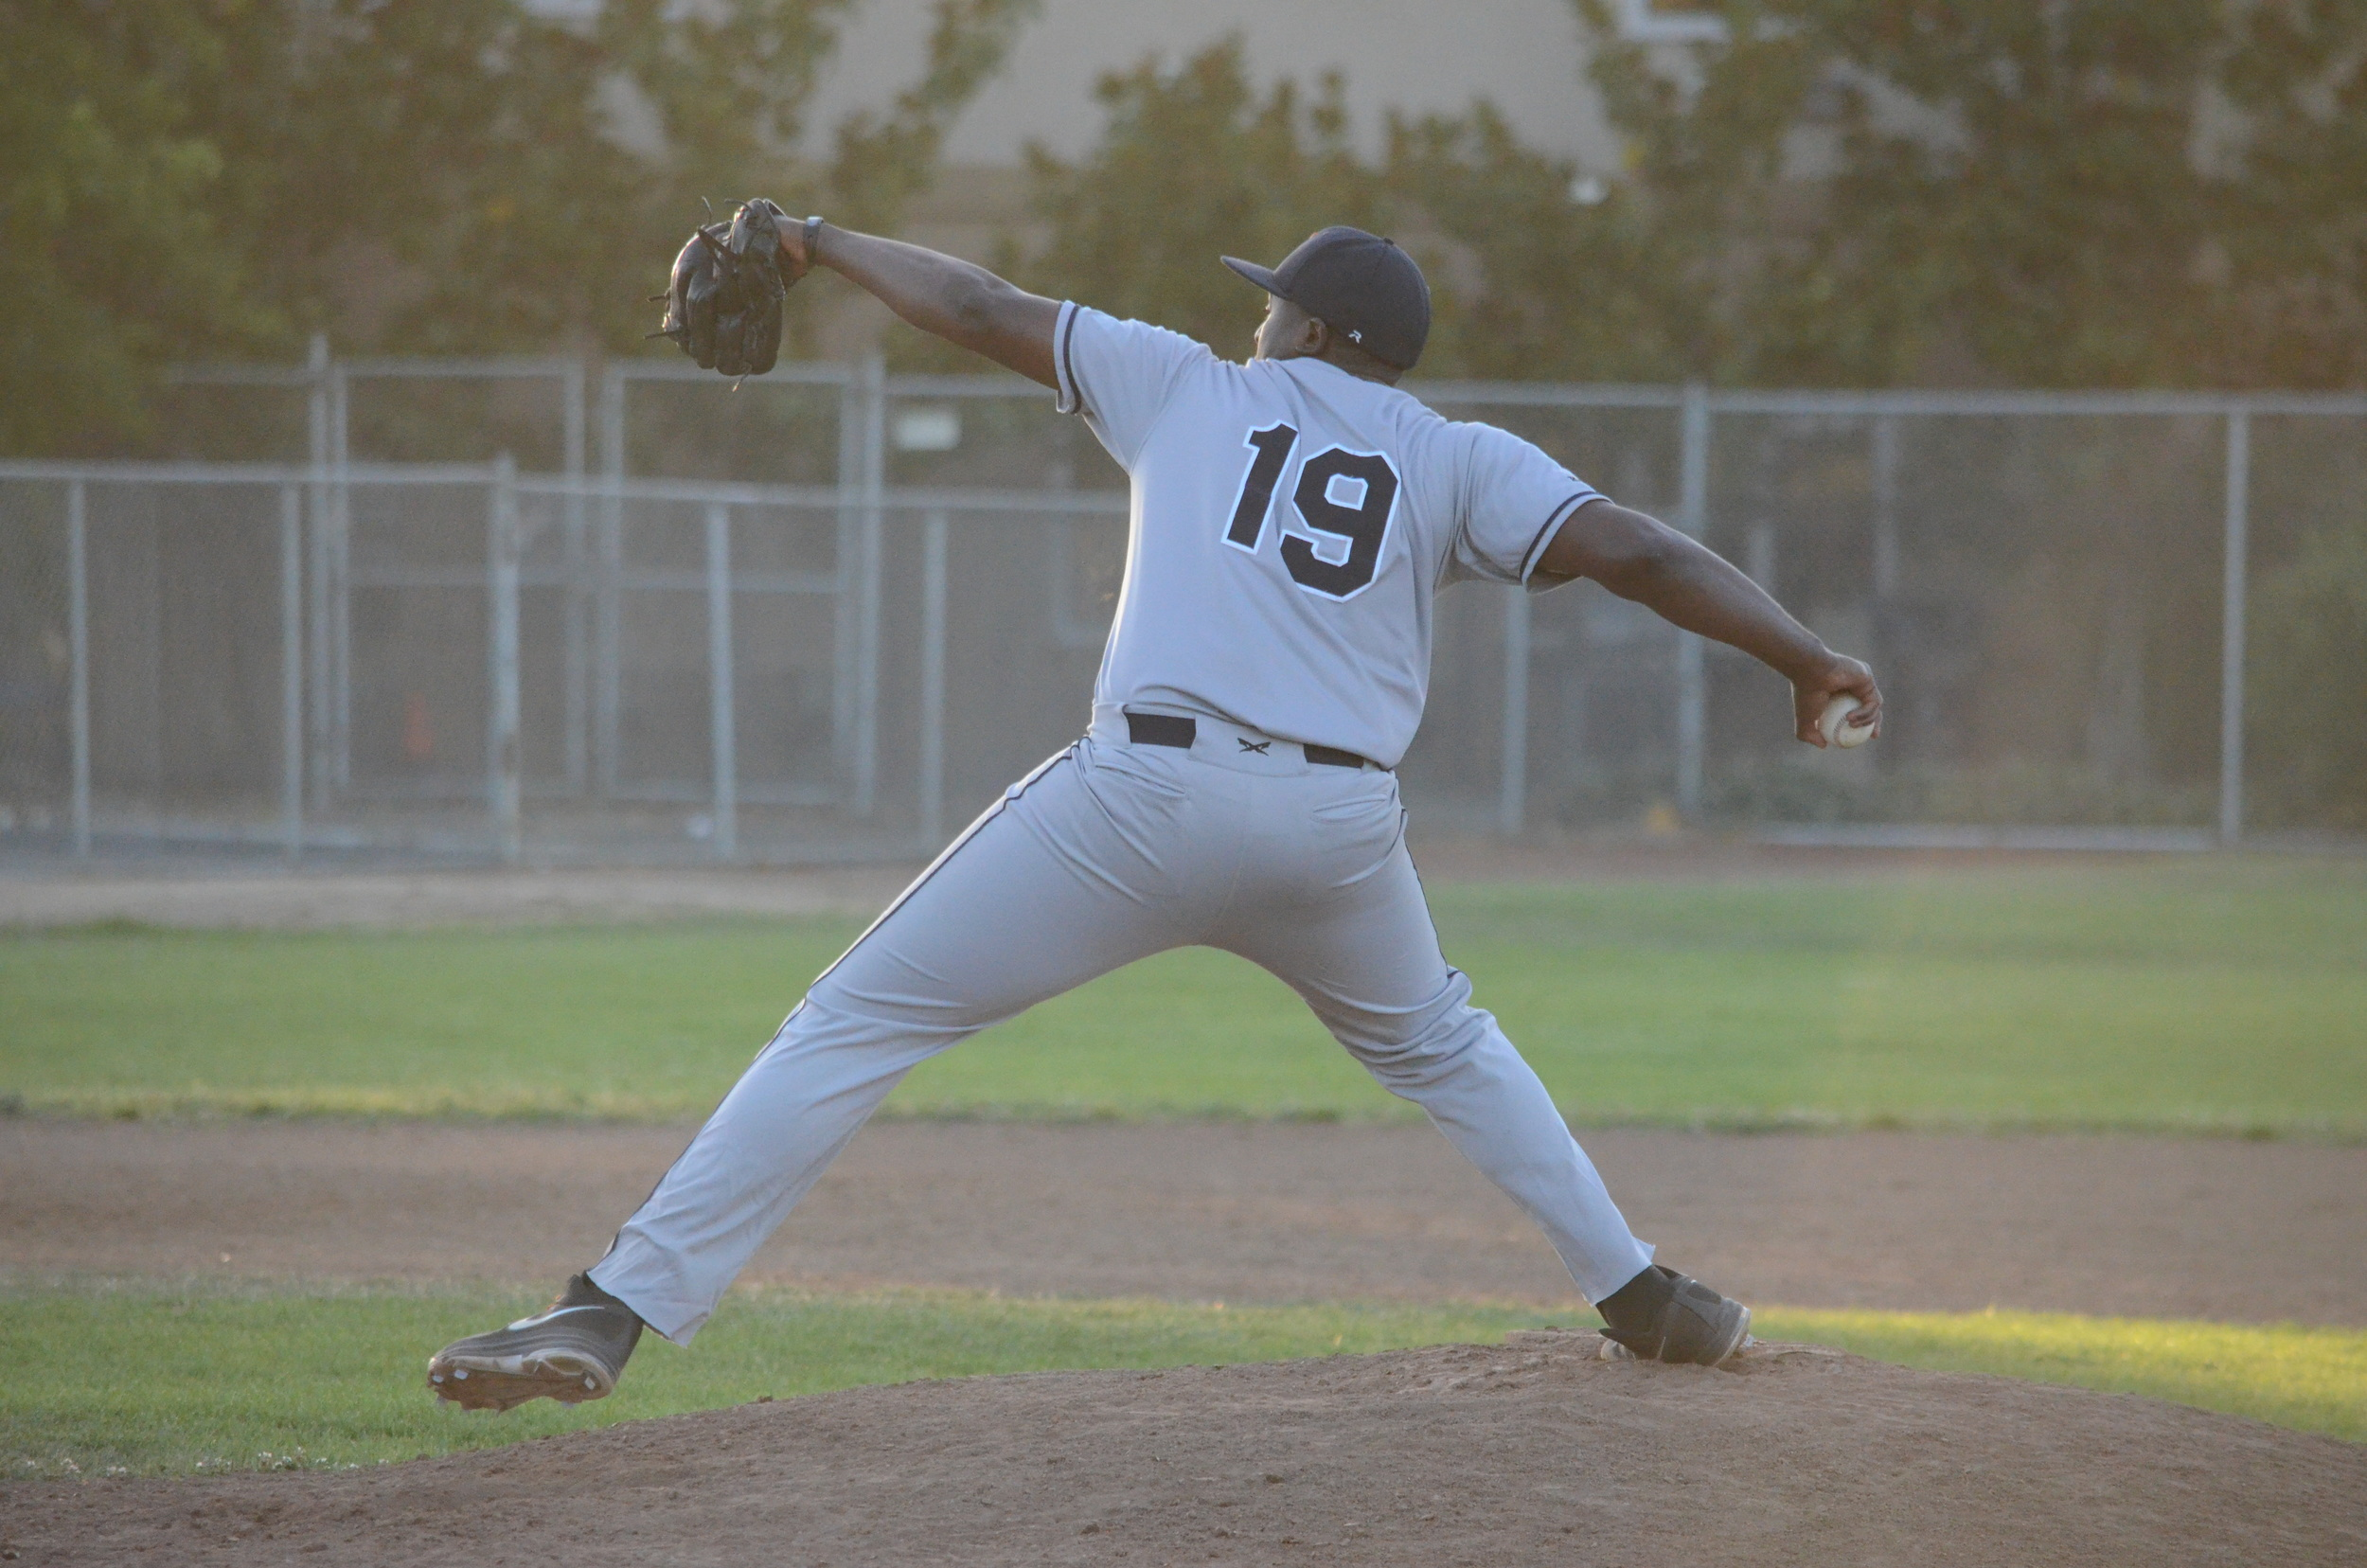 Mike Jackson Jr. picked up his fourth win of the season with a complete game Saturday against the Admirals. Jackson Jr. allowed only three hits and struck out eight on only 95 pitches.   James Toy III/Sonoma Stompers